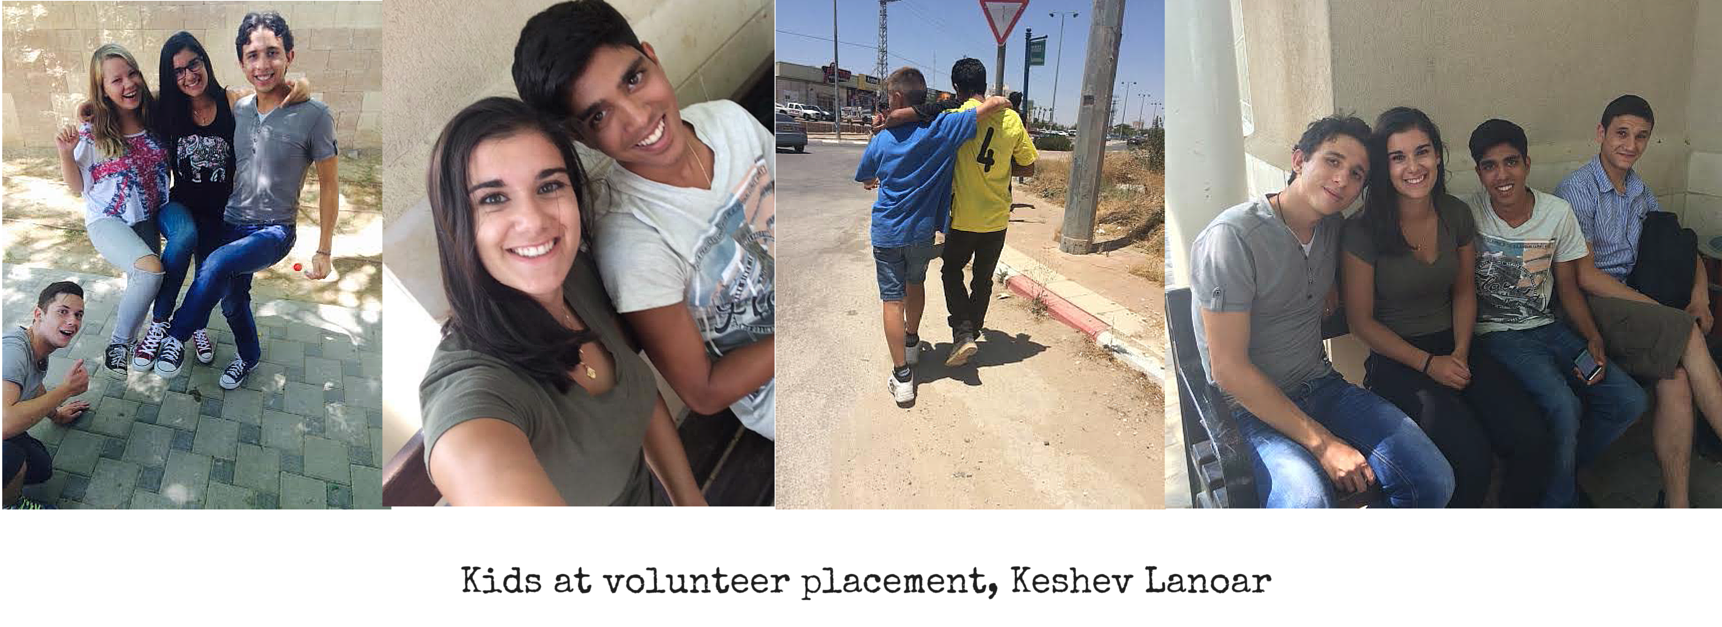 Images of volunteer work in Israel